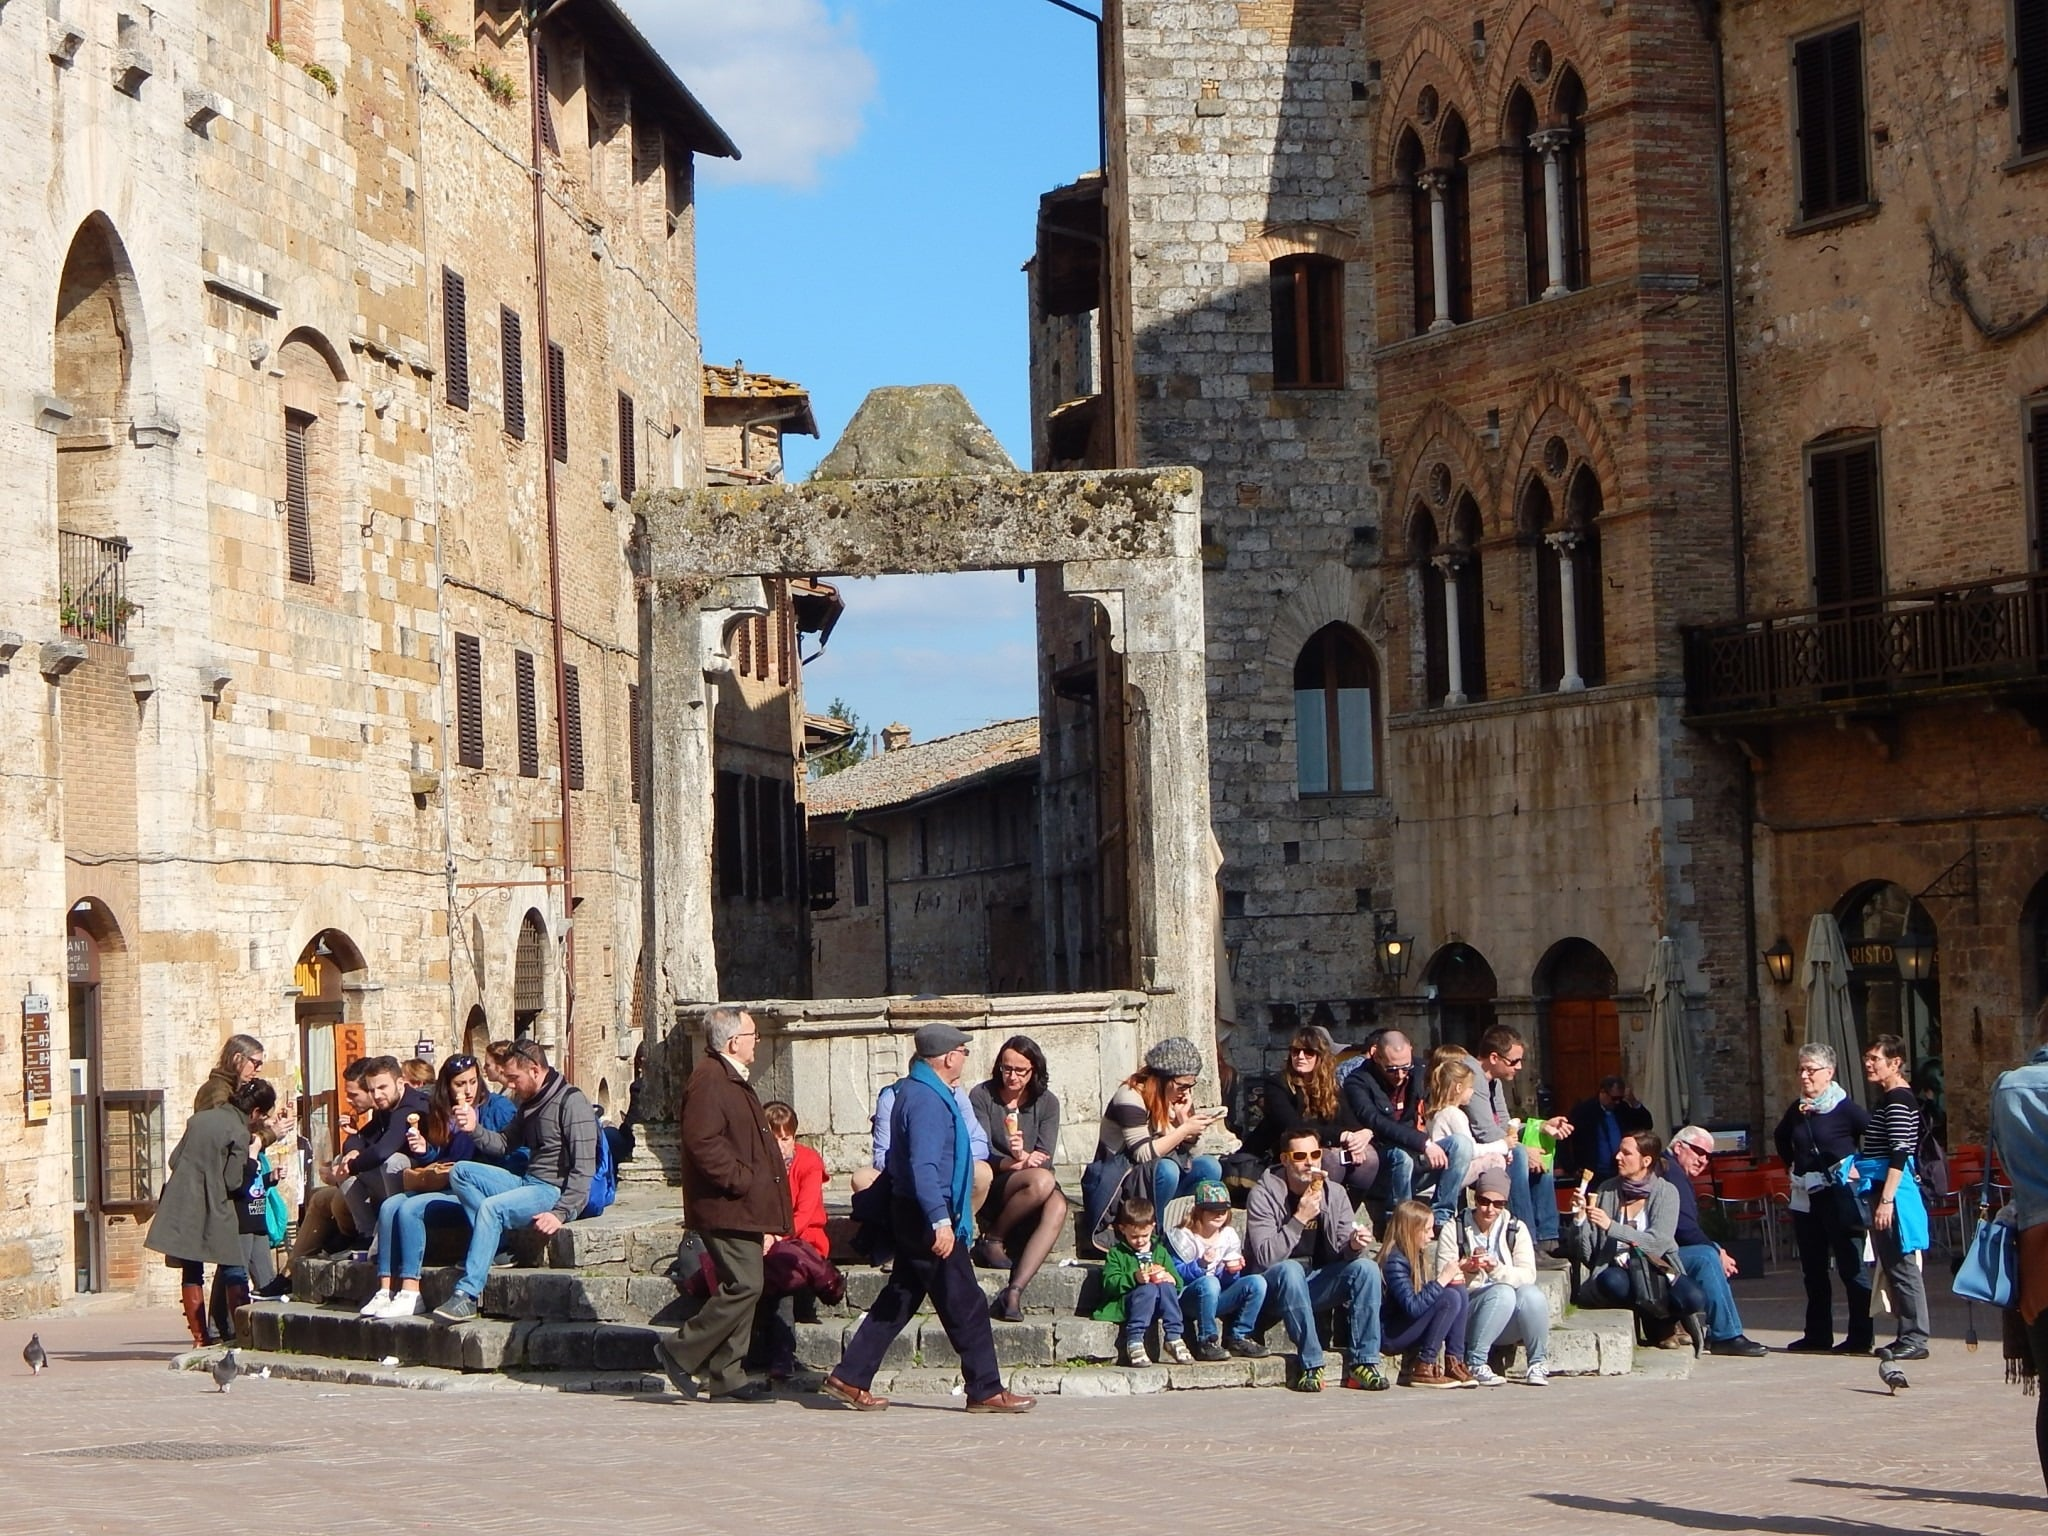 The main piazza in San Gimignano